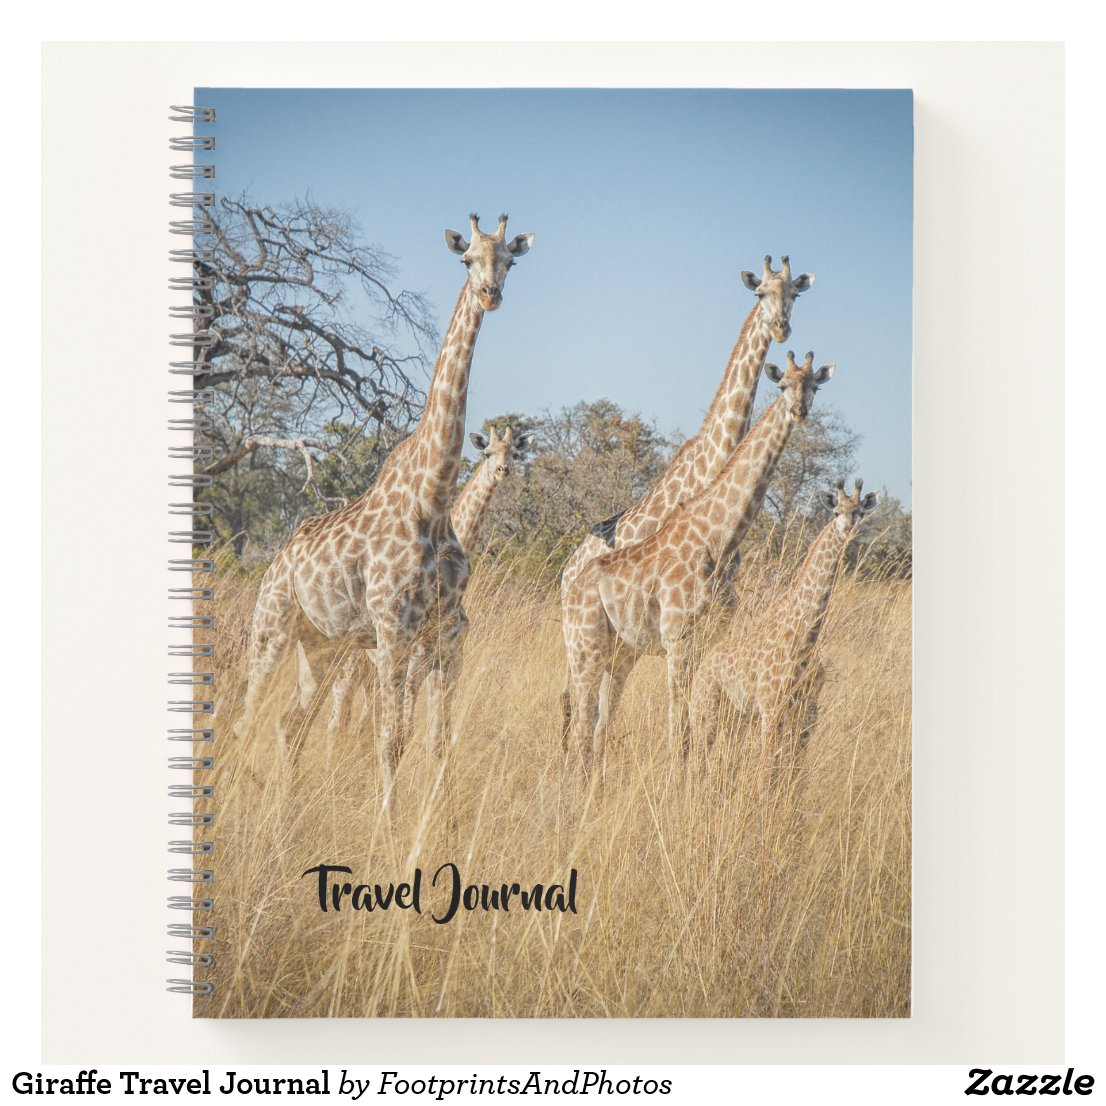 Giraffe Travel Journal